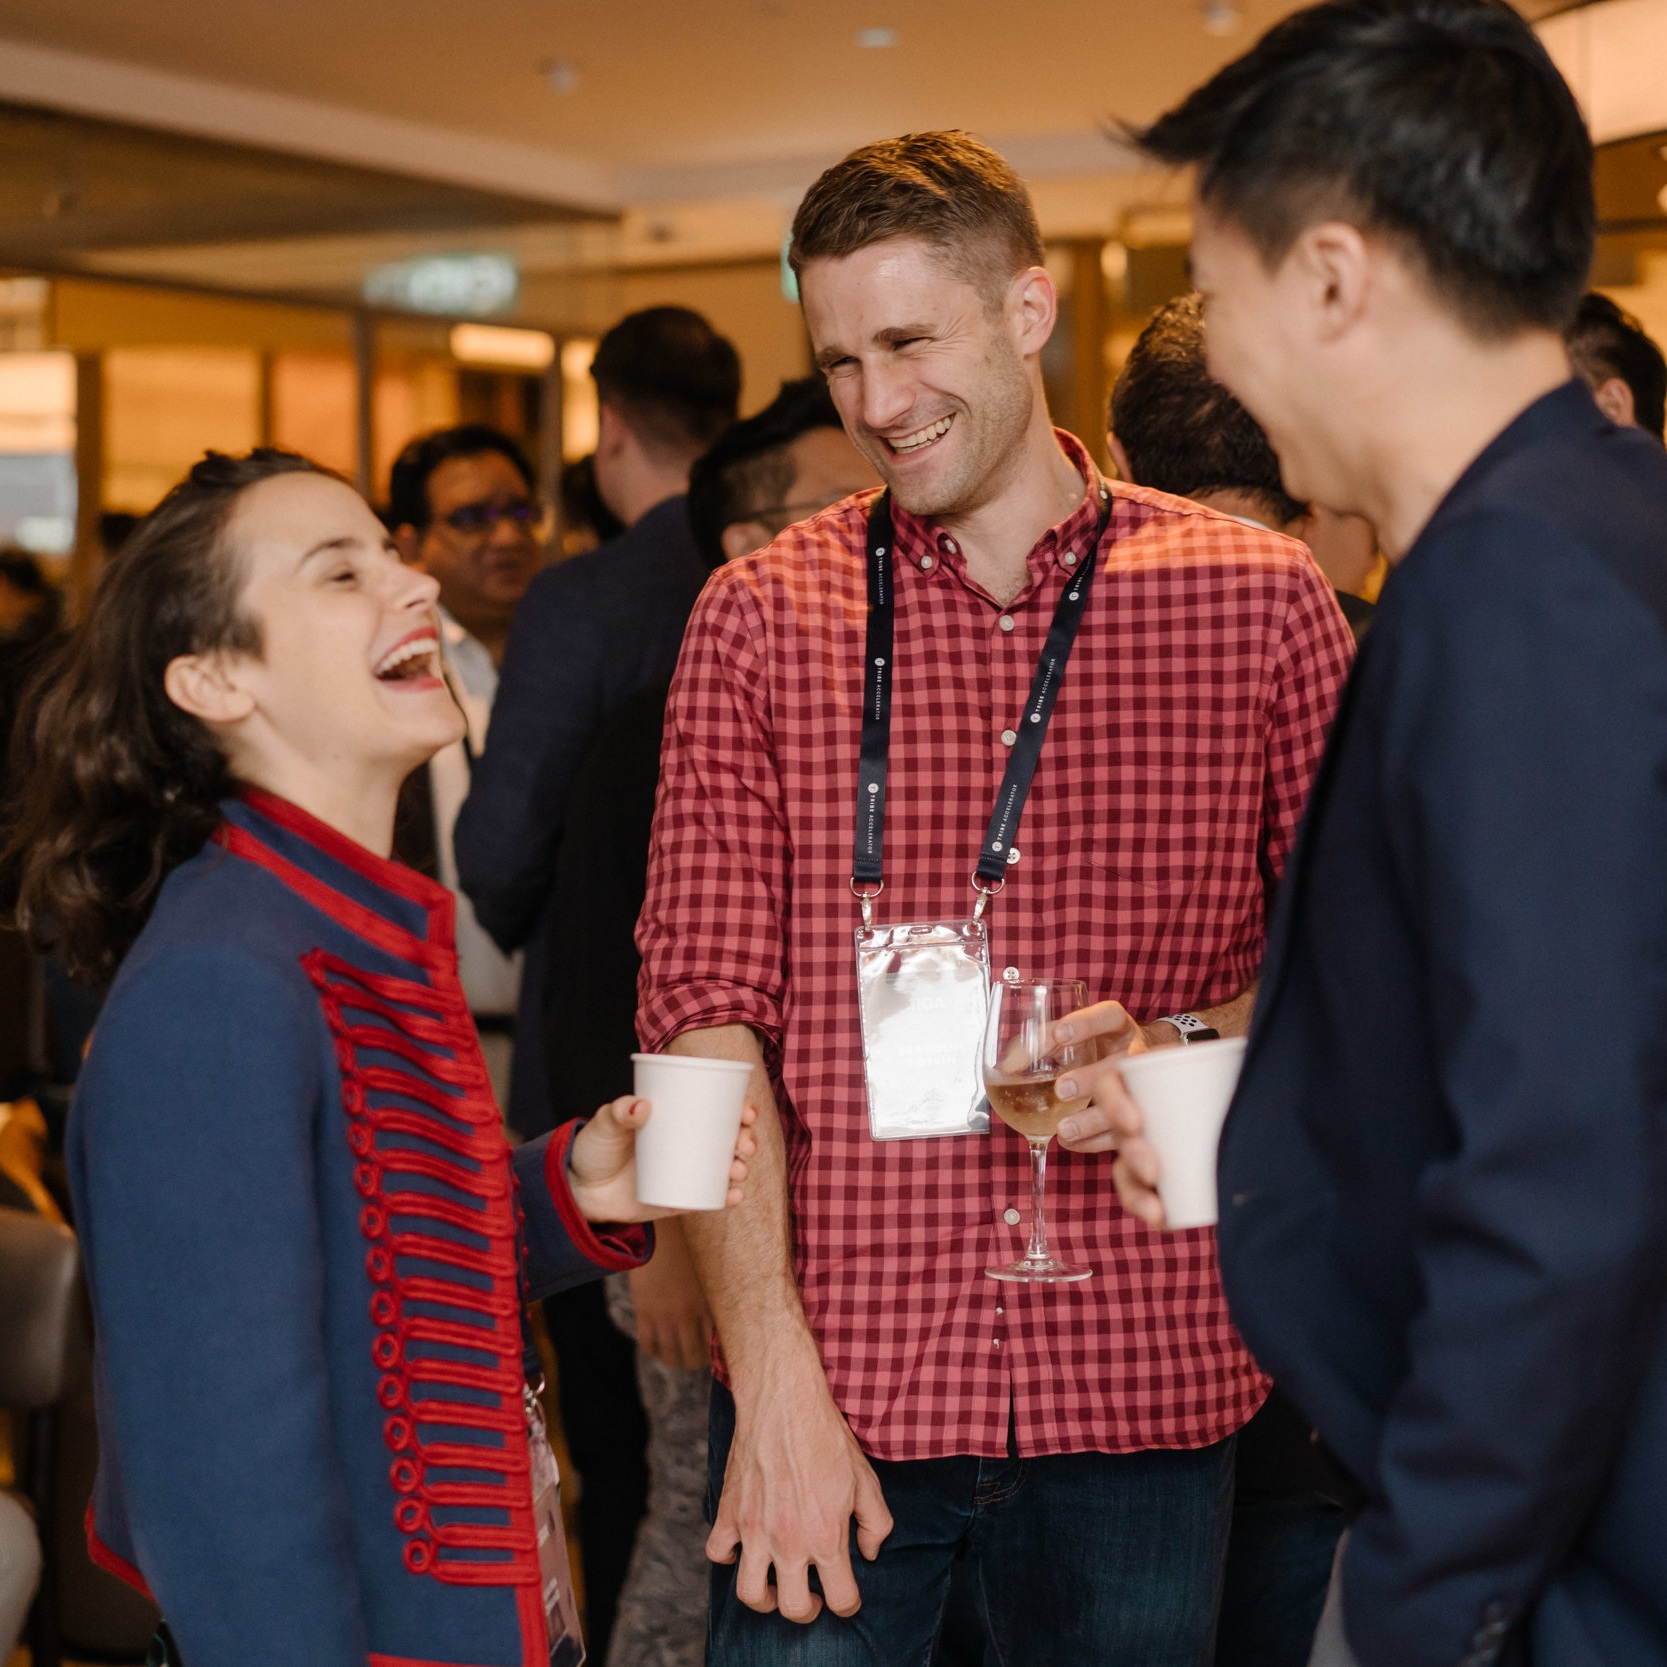 Networking Opportunities - Tribe Accelerator provides many opportunities for acceleratees to network with top-tier corporates and blockchain companies.Our Founders' Nights bring people together for thought leadership events in an intimate dinner setting to network, facilitating forward-thinking discussions with the start-up community.